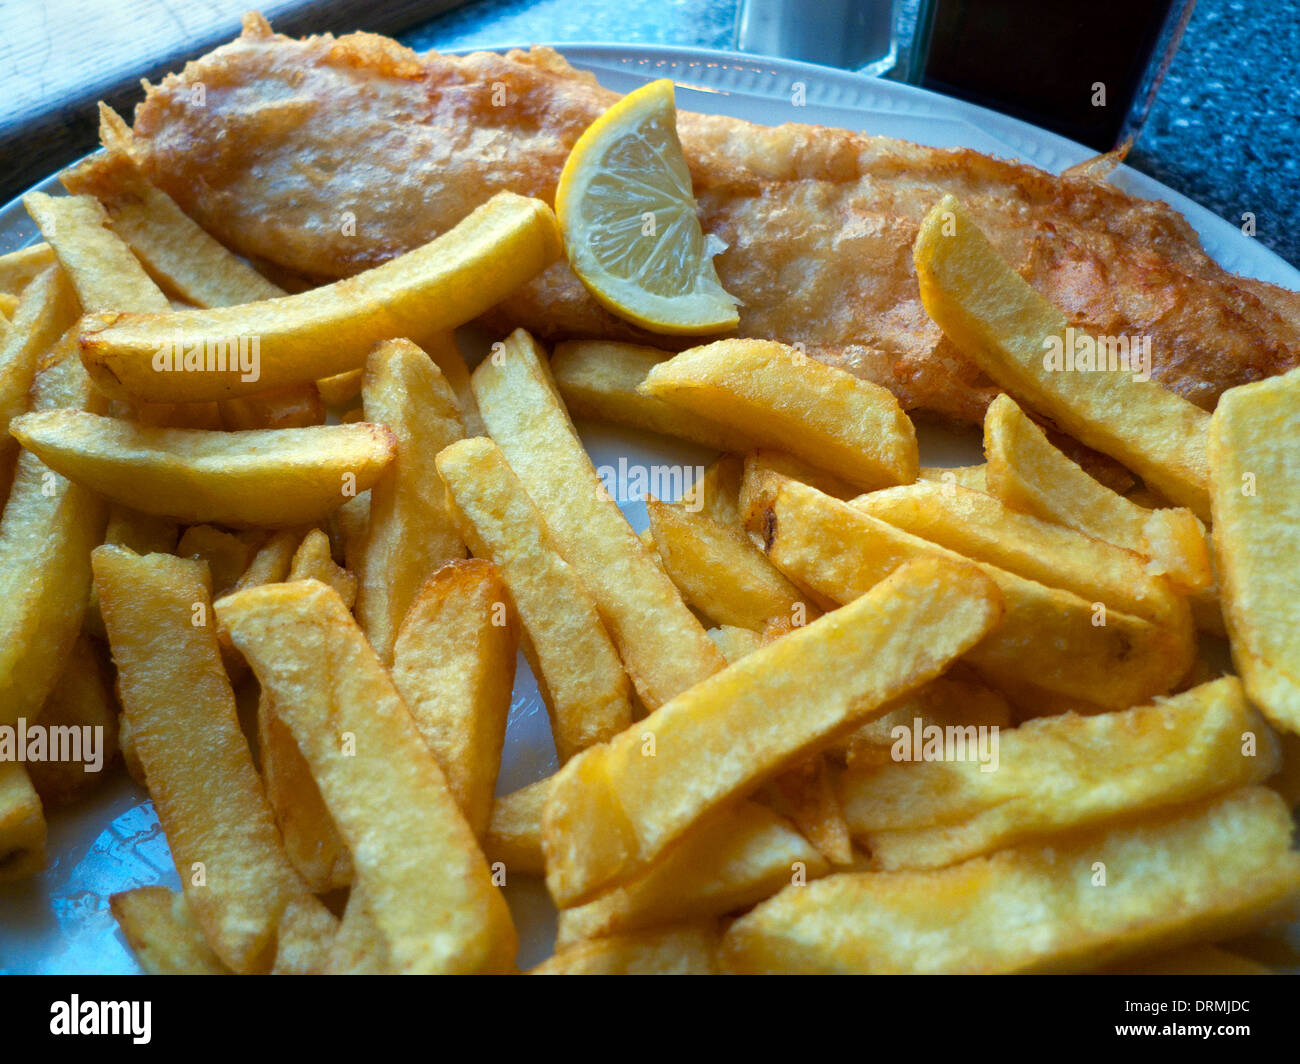 Fish and chips meal on a plate in Lloyds take-away shop in Lampeter Ceredigion Wales UK   KATHY DEWITT - Stock Image